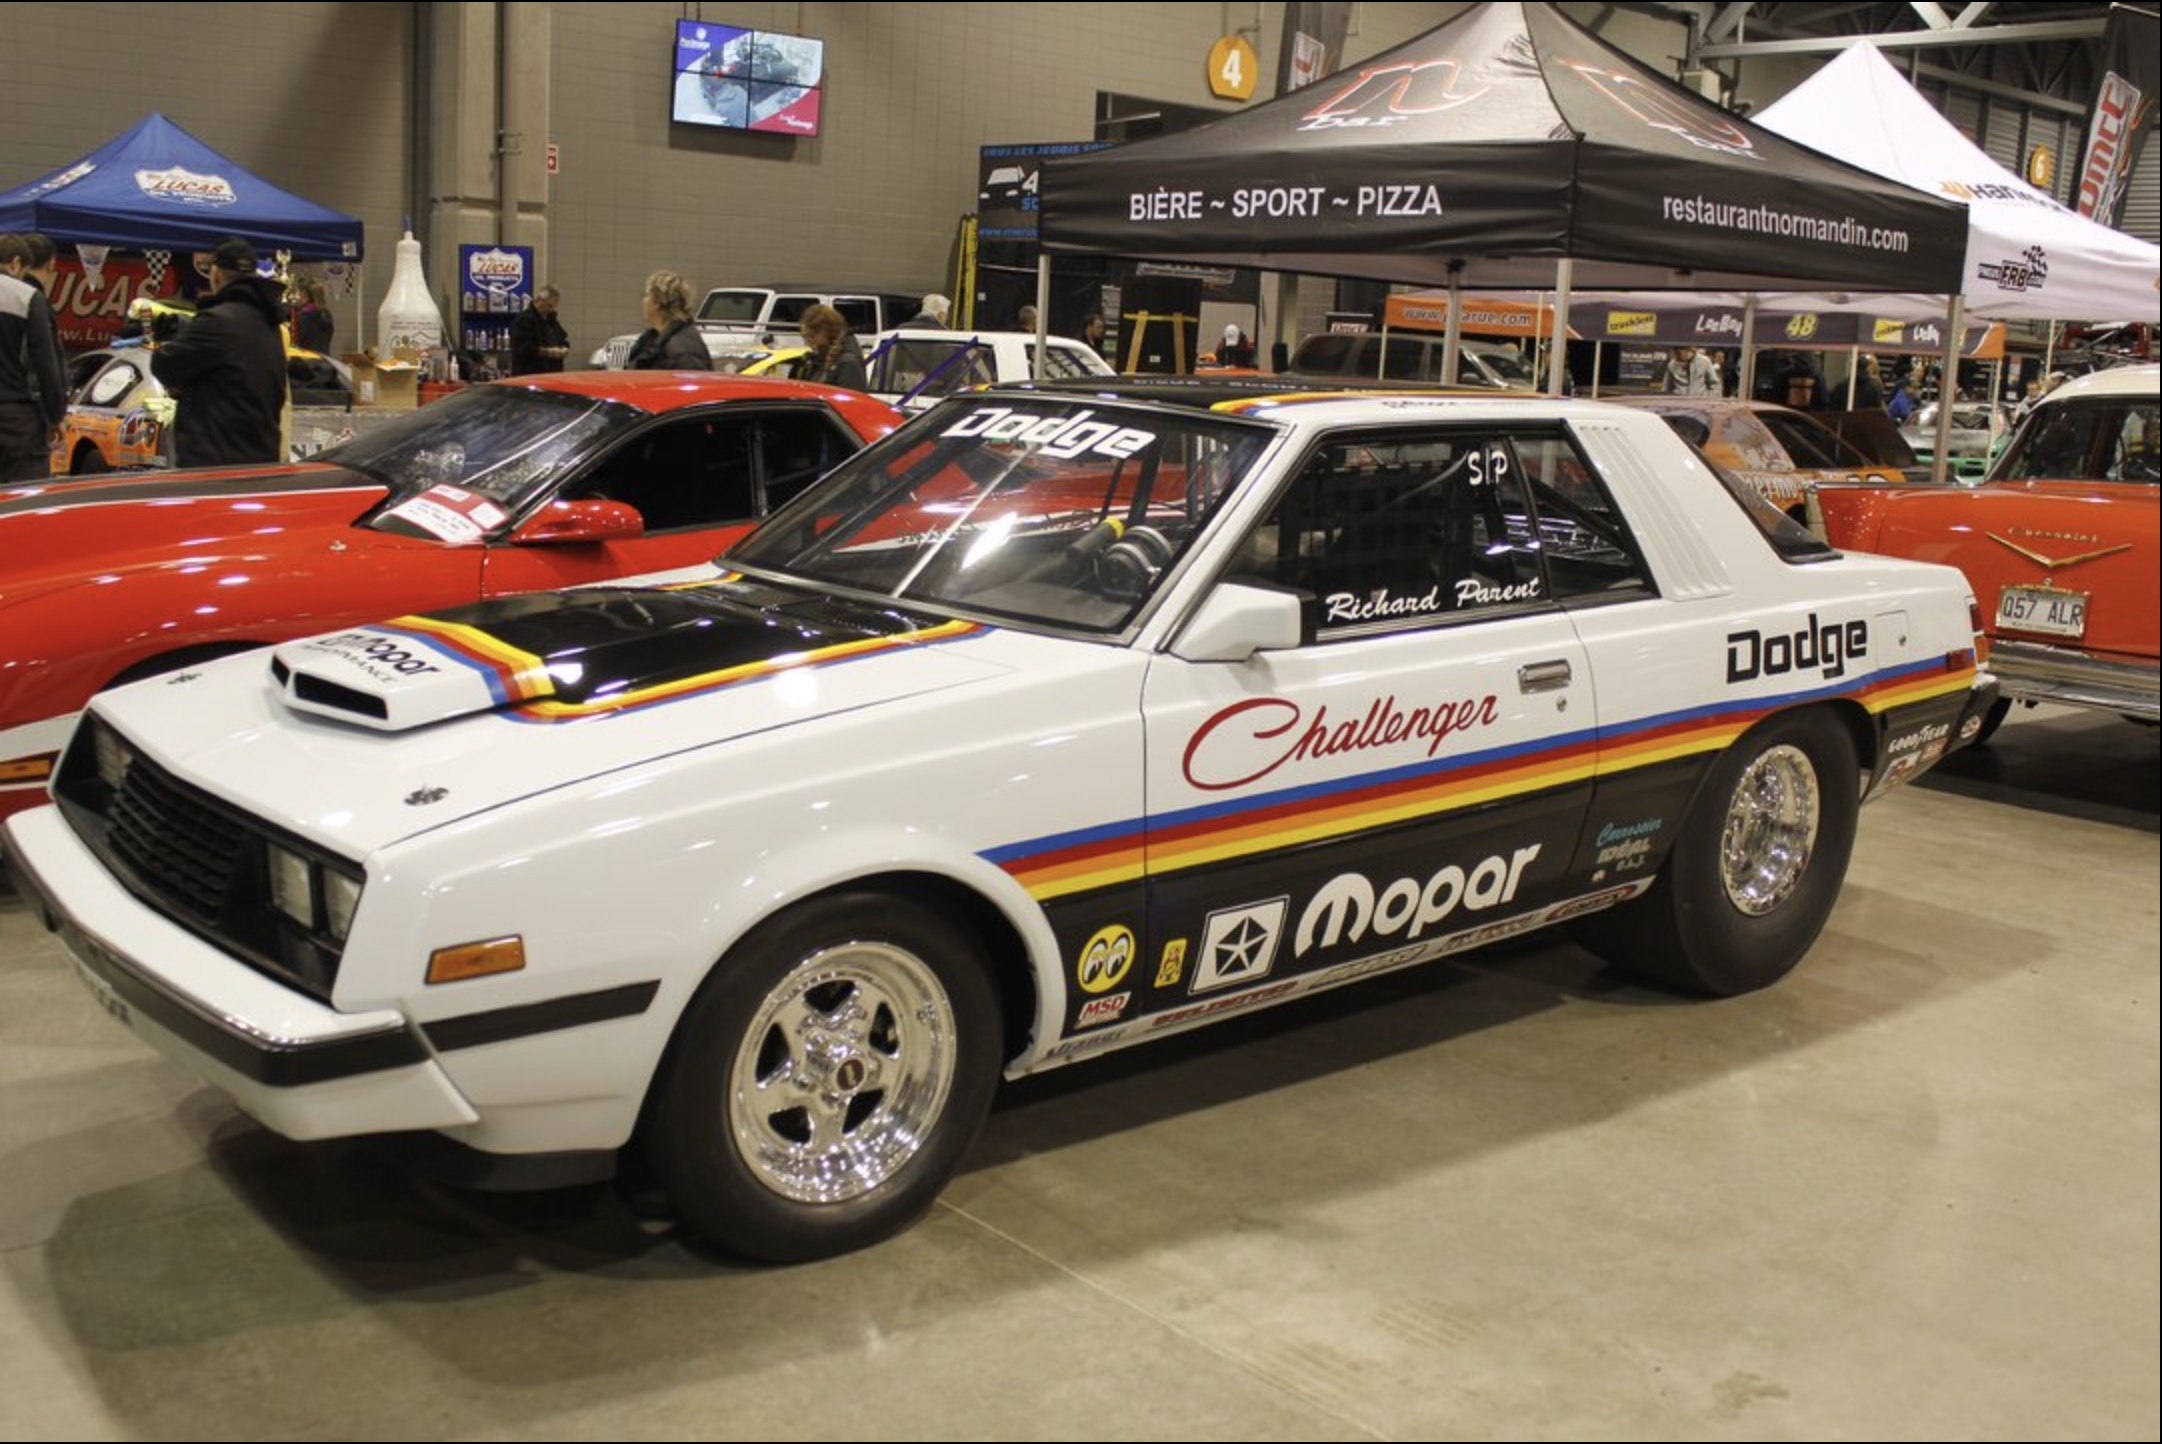 Middle Child Syndrome: This 1981 Dodge Challenger Has To Go All-Out To Be Noticed!